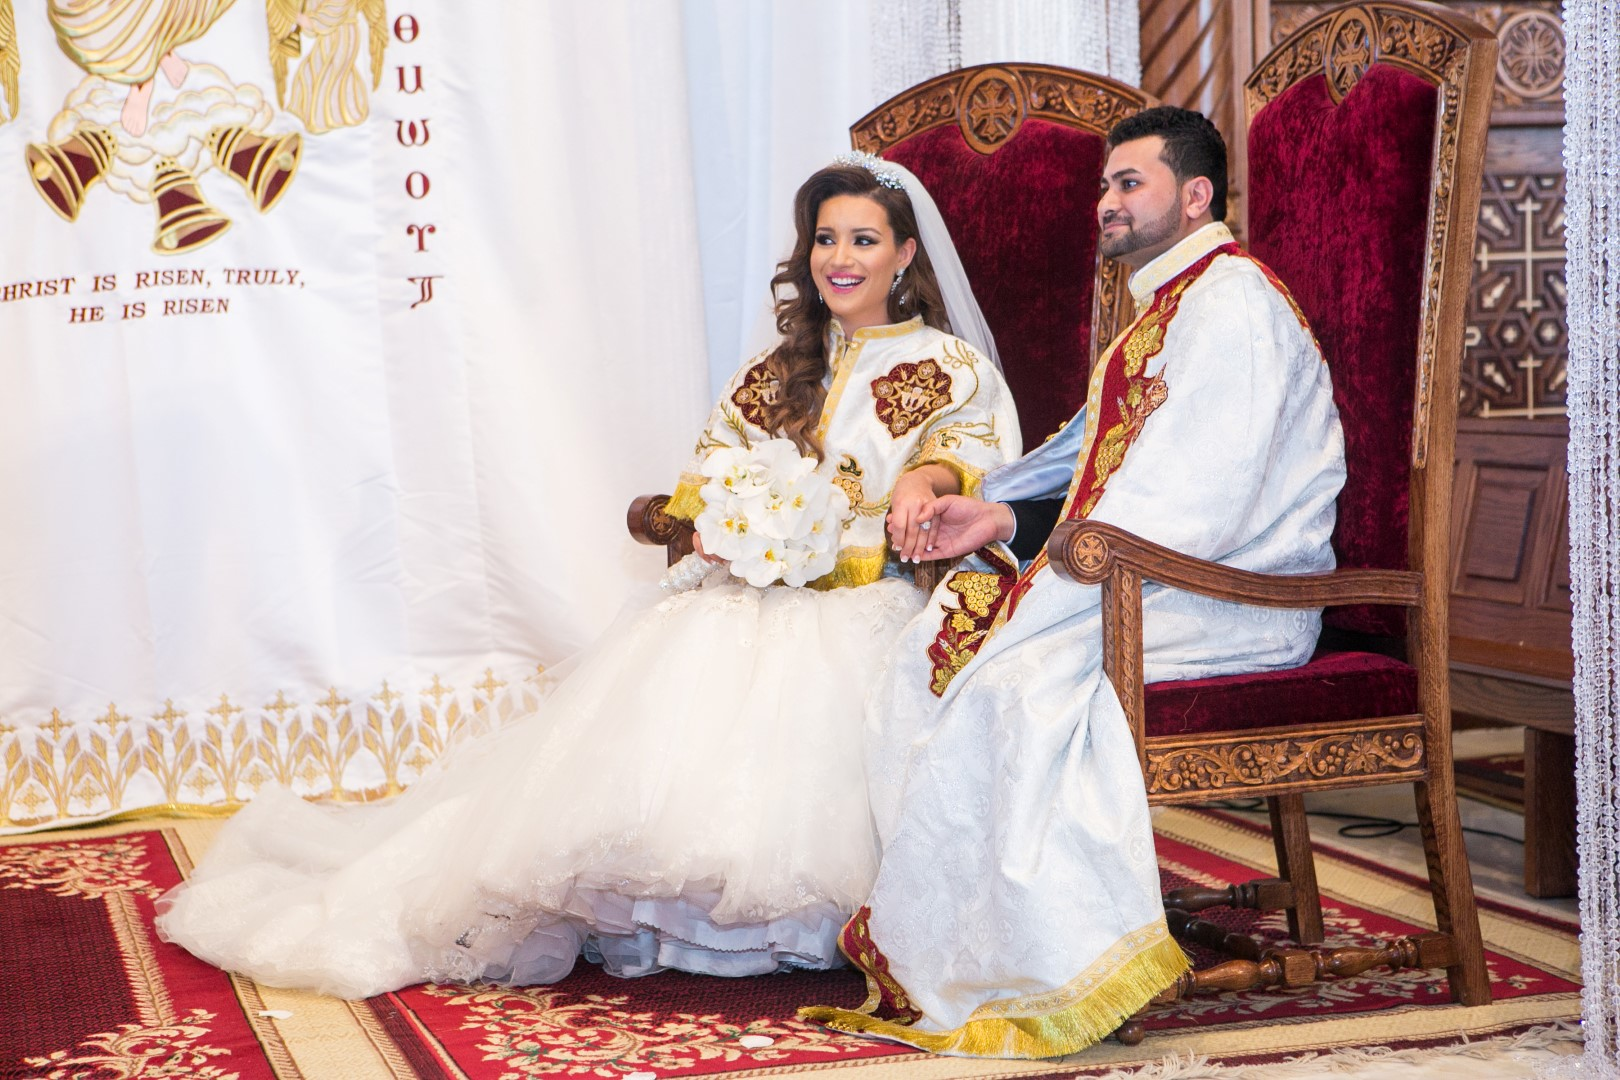 Mind Blowing Traditional Wedding Dresses Around The World: Going To A Coptic Wedding Ceremony? Heres What You Need To